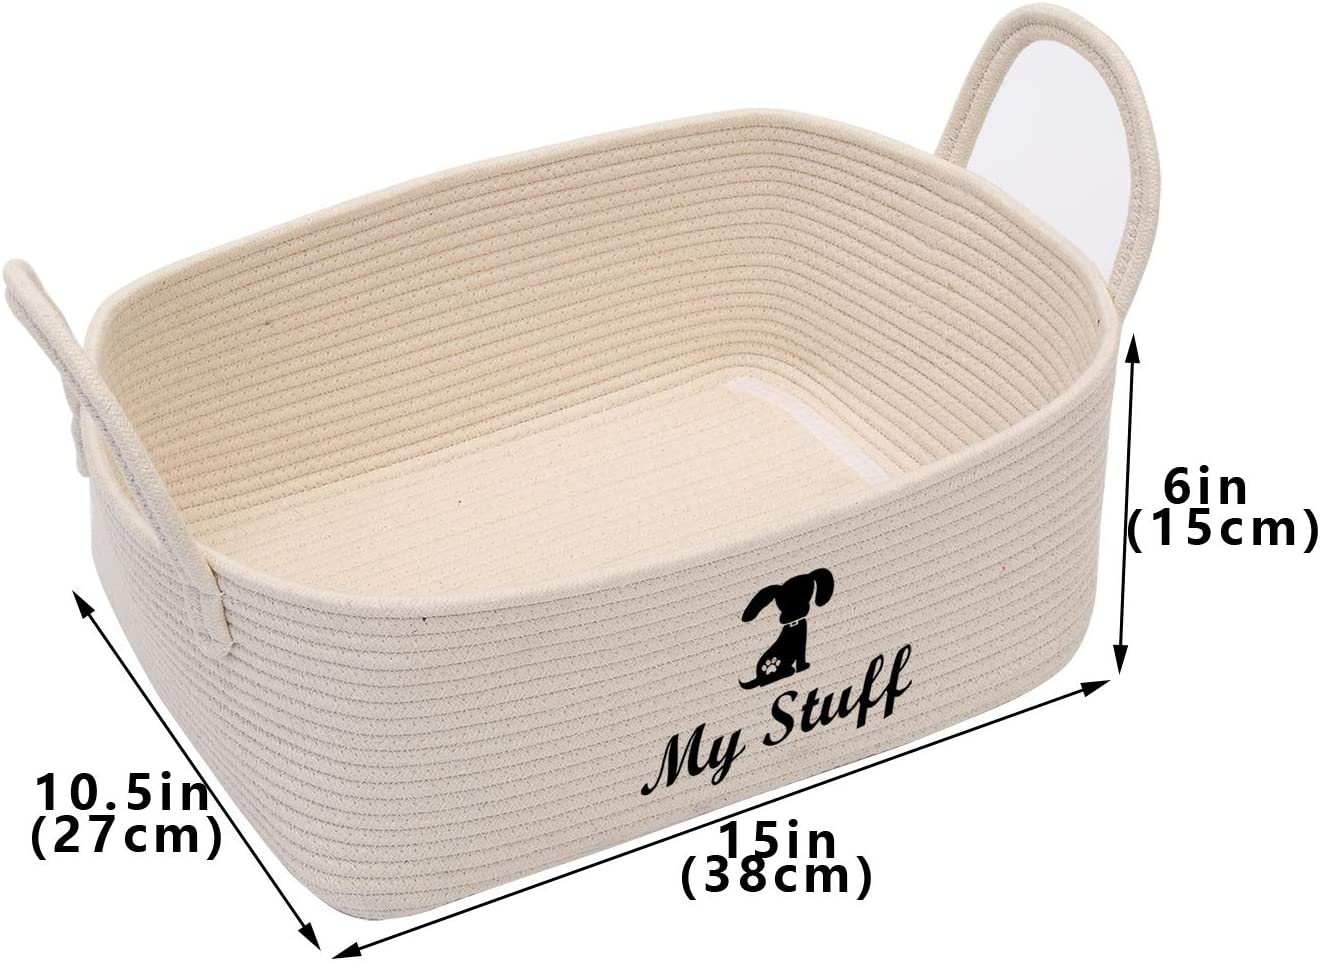 Brabtod Cotton pet toy storage basket with handle Beige pet toy box- Perfect for organizing small cat toys scratching posts and cat stuff kitty blankets Cat cat toy basket